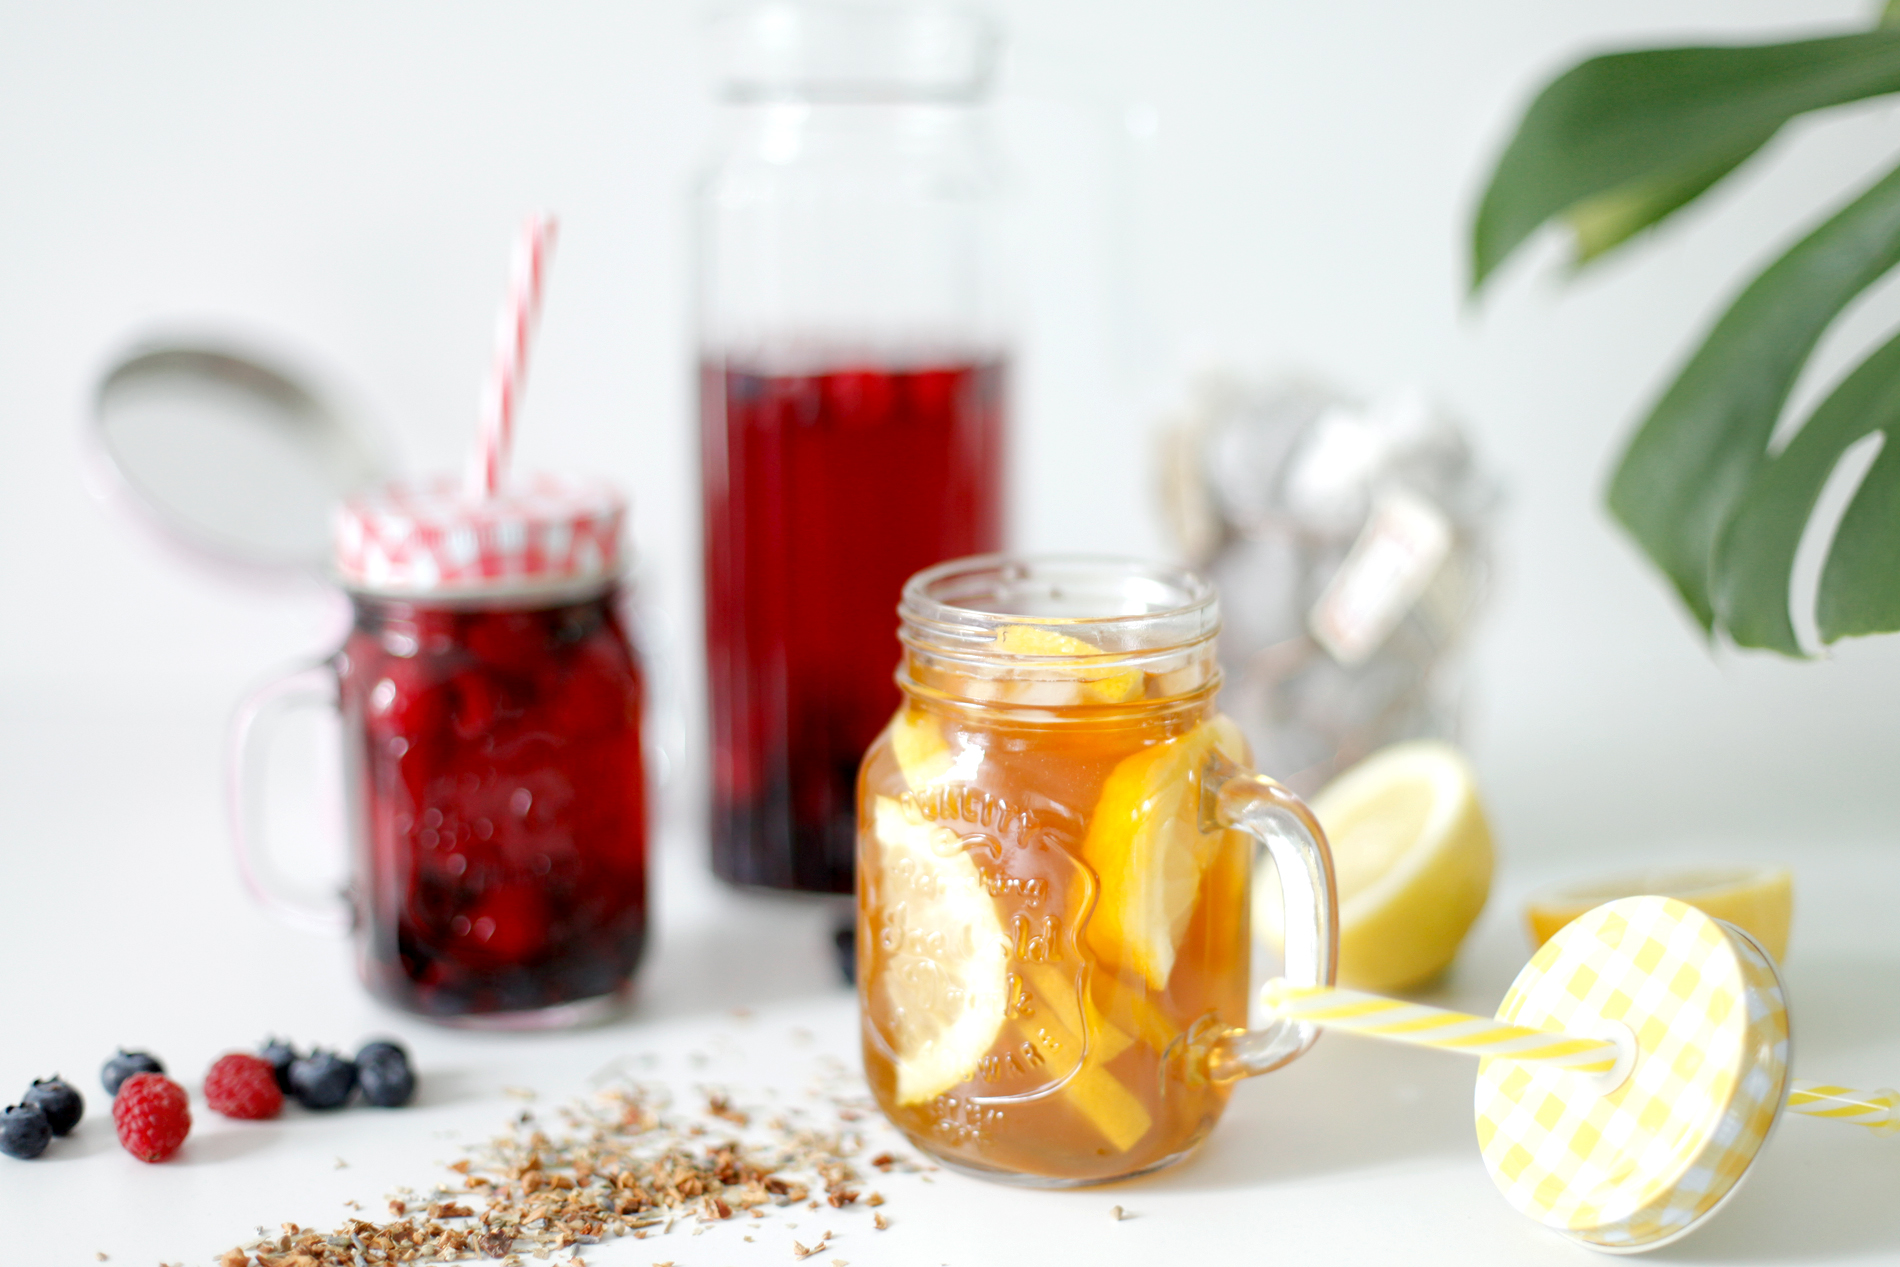 ice tea home made lemon fruit berry red ice summertime drink drinks healthy life living detox fresh water selfmade healthy good fitness fresh hot nice cooking foodblog cats & dogs ricarda schernus fashionblogger germany 5